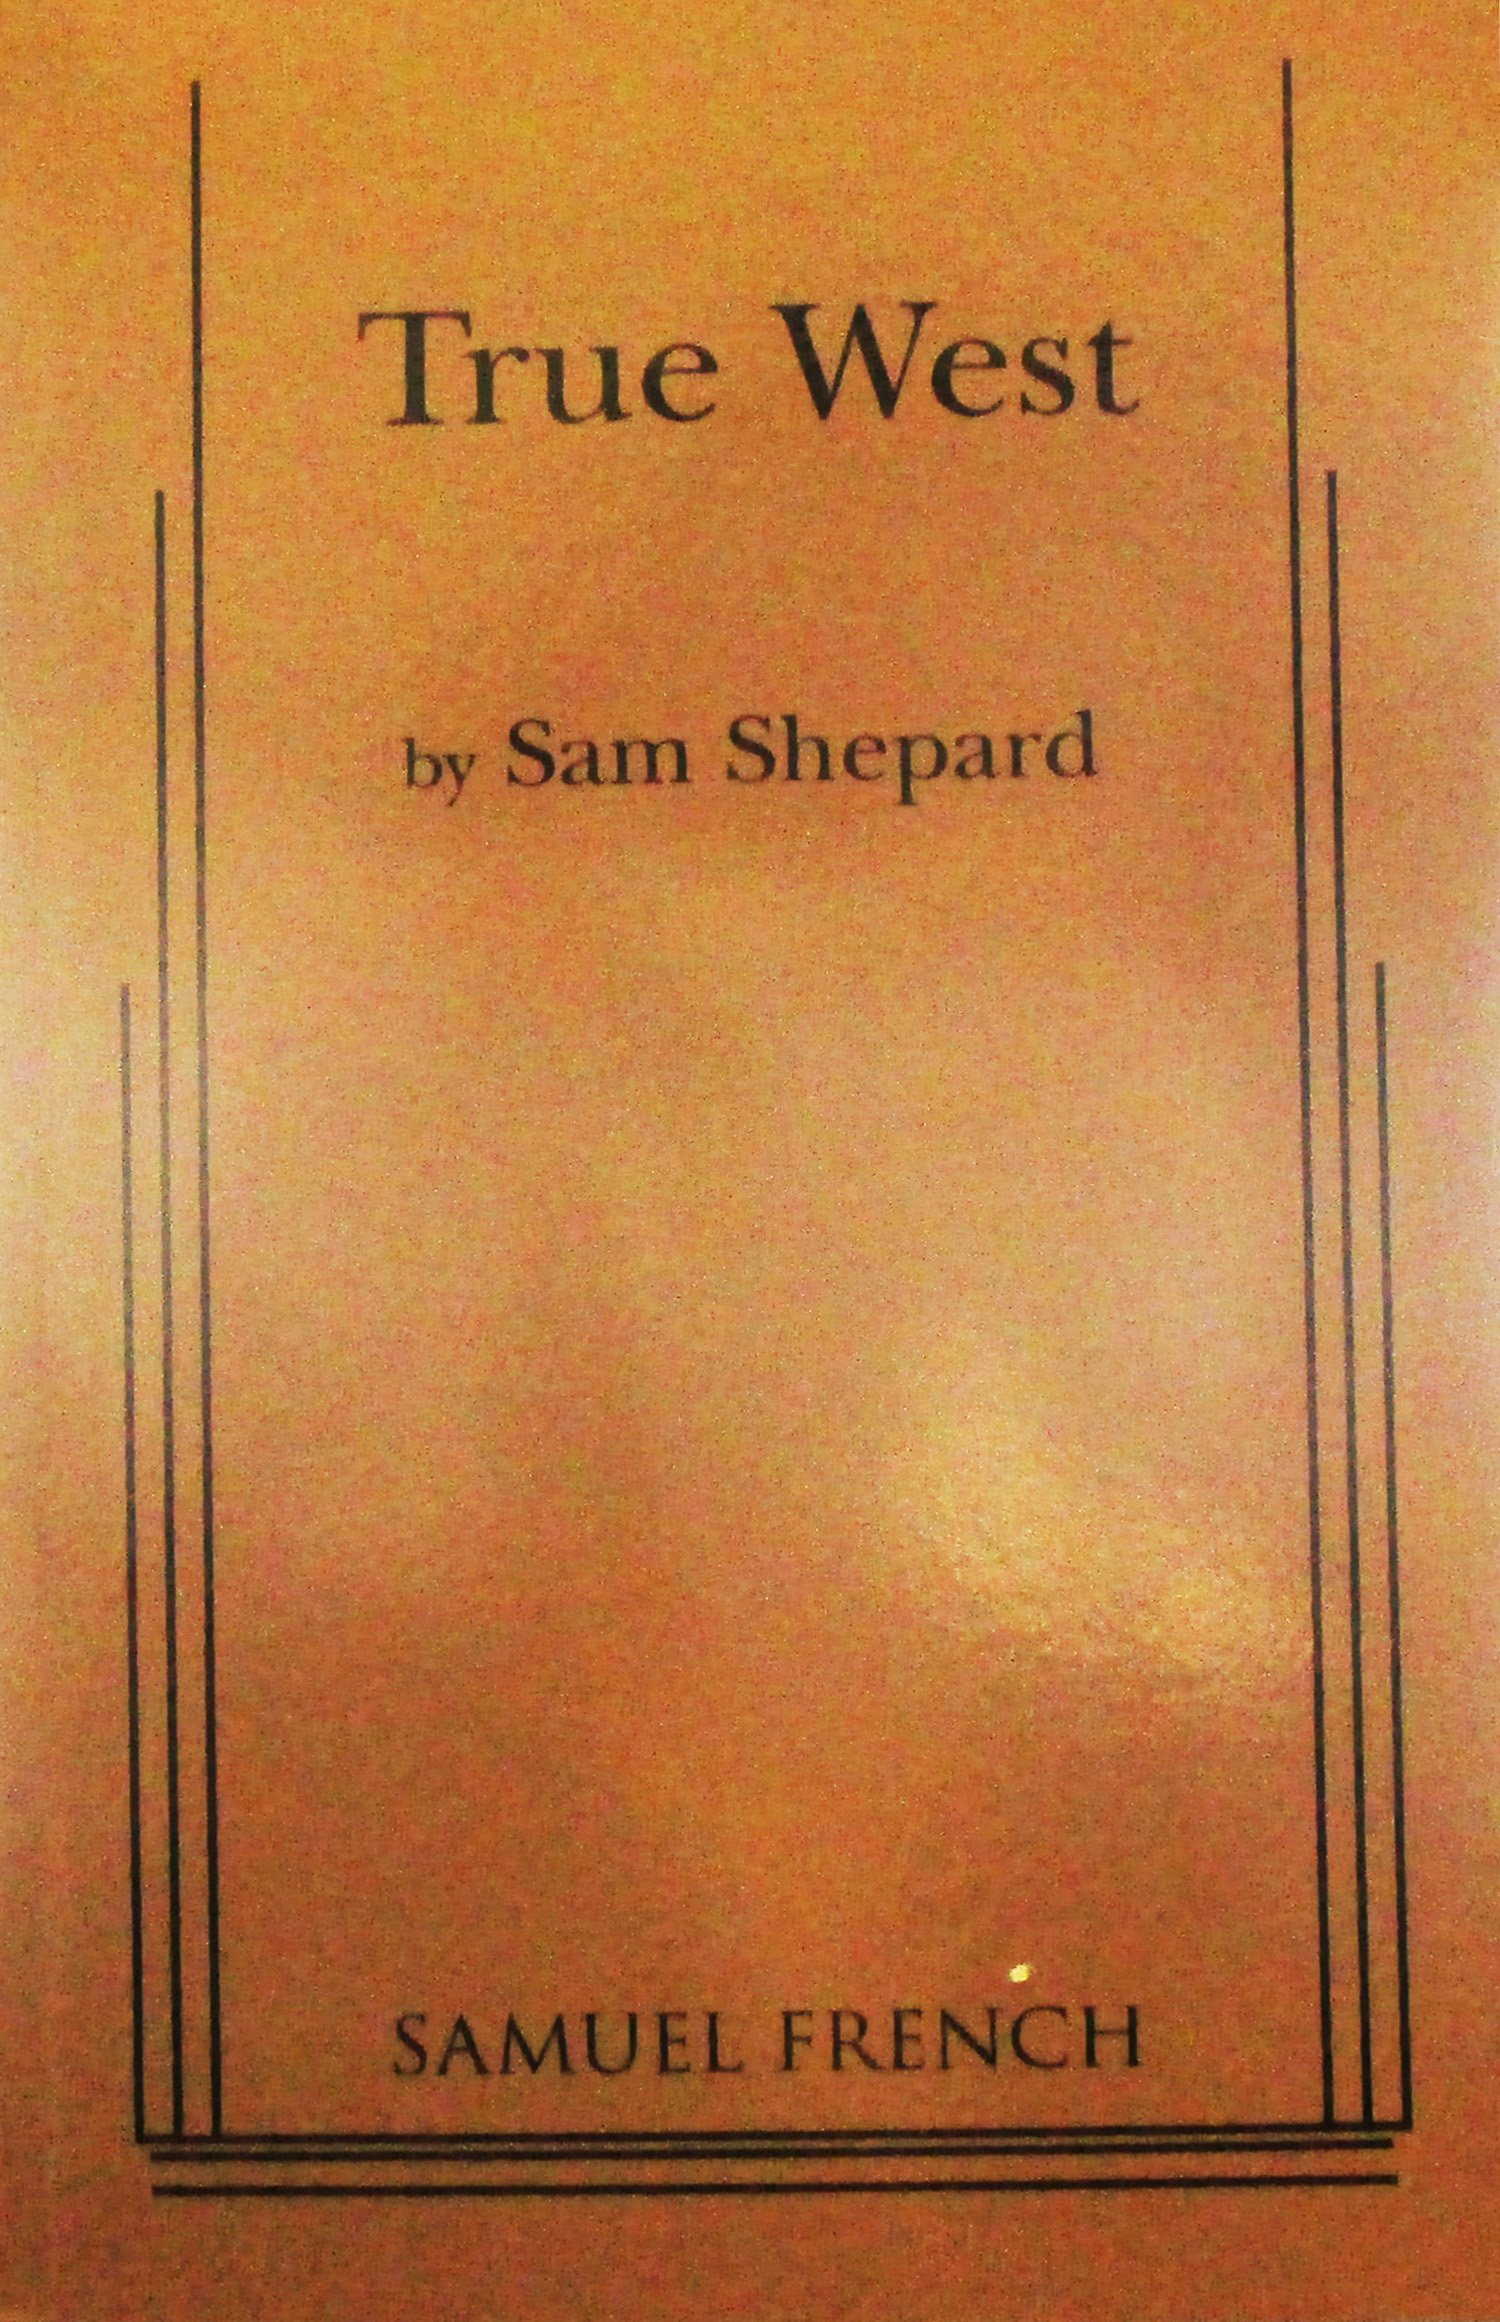 true west by sam shepard essay The present essay studies four of the most prominent plays of sam  among  them, true west is the only play that, as shepard claims, has no.